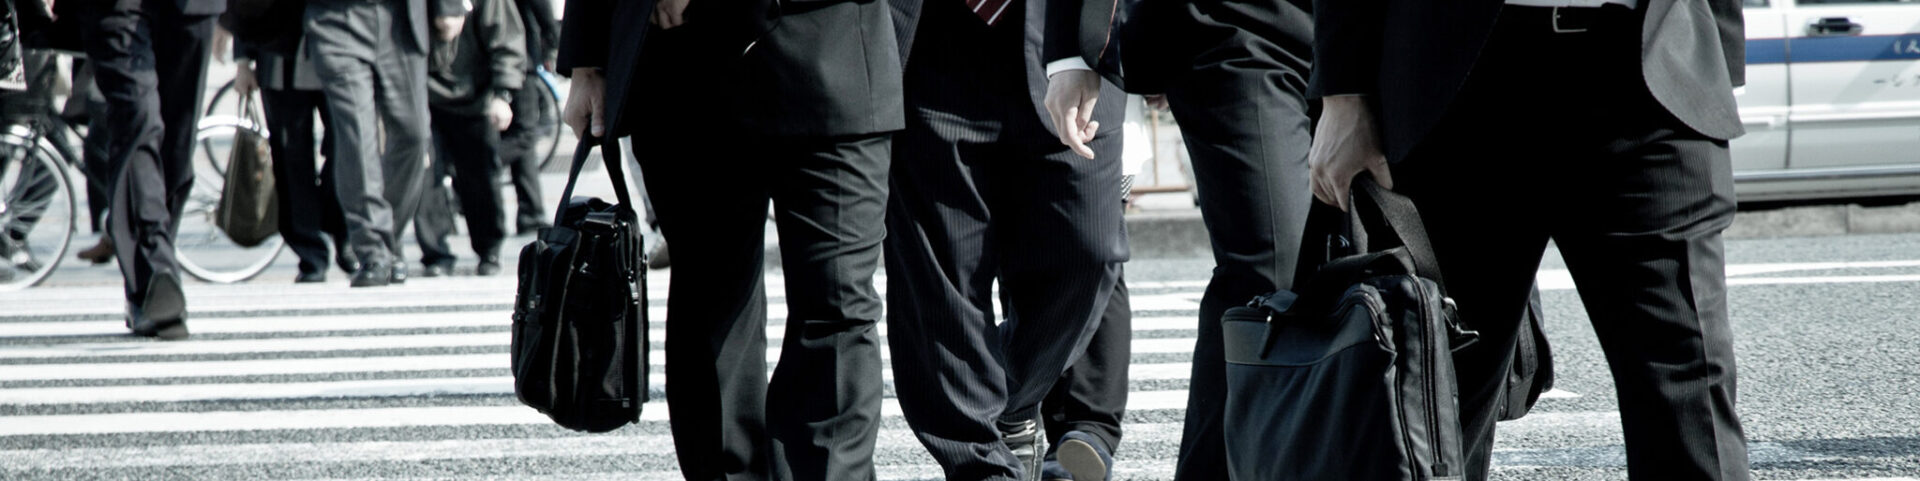 Office workers crossing a street on their way to the office, following the uniform Japanese working culture